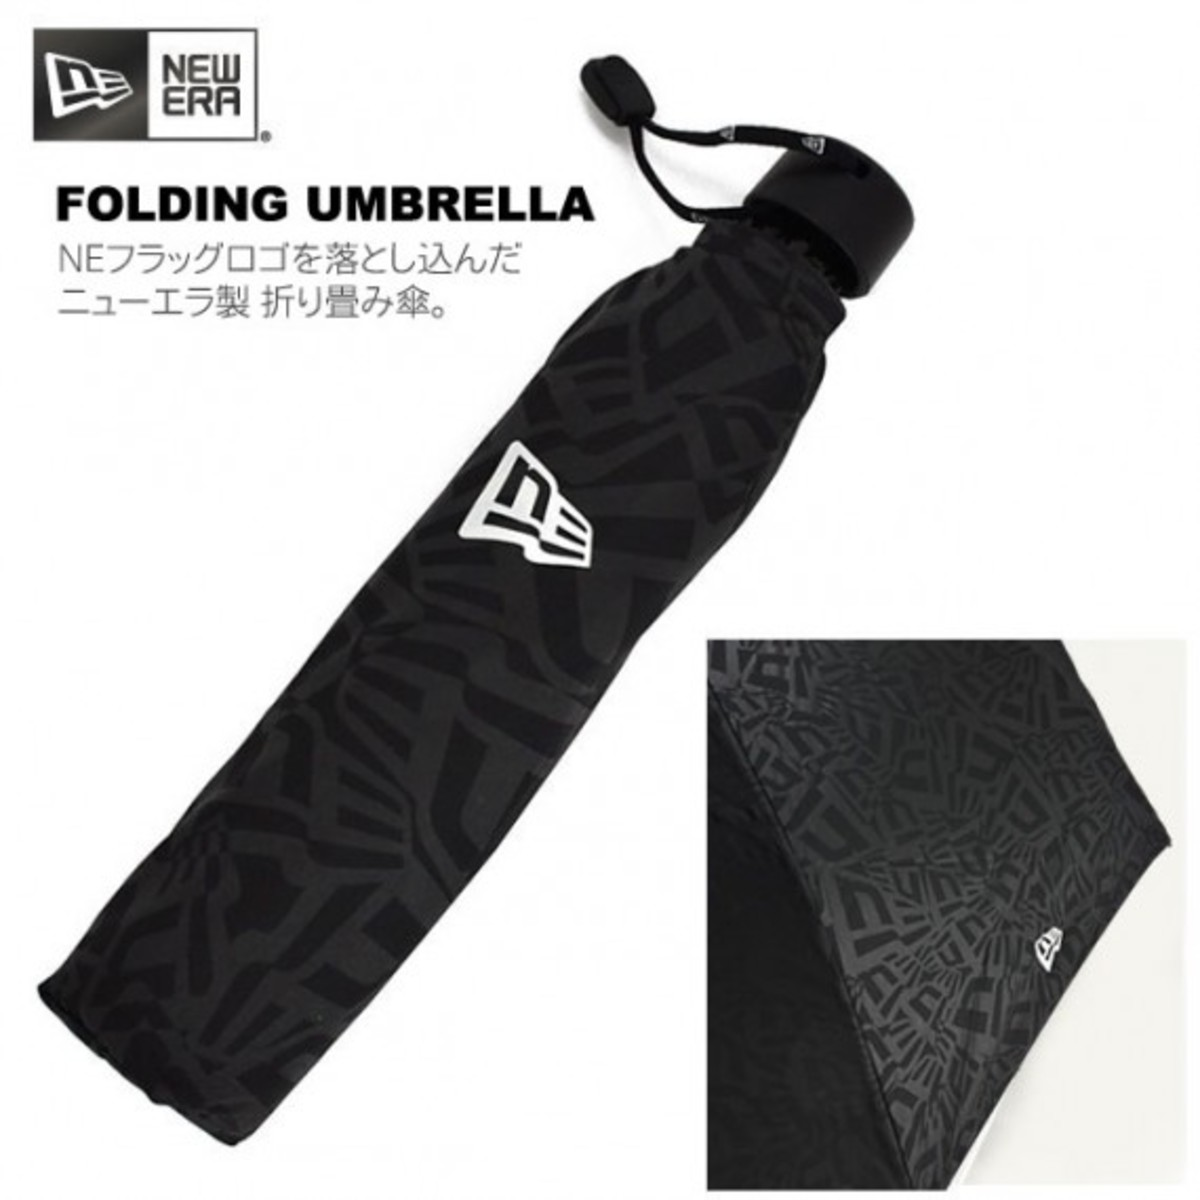 new-era-folding-umbrella-03